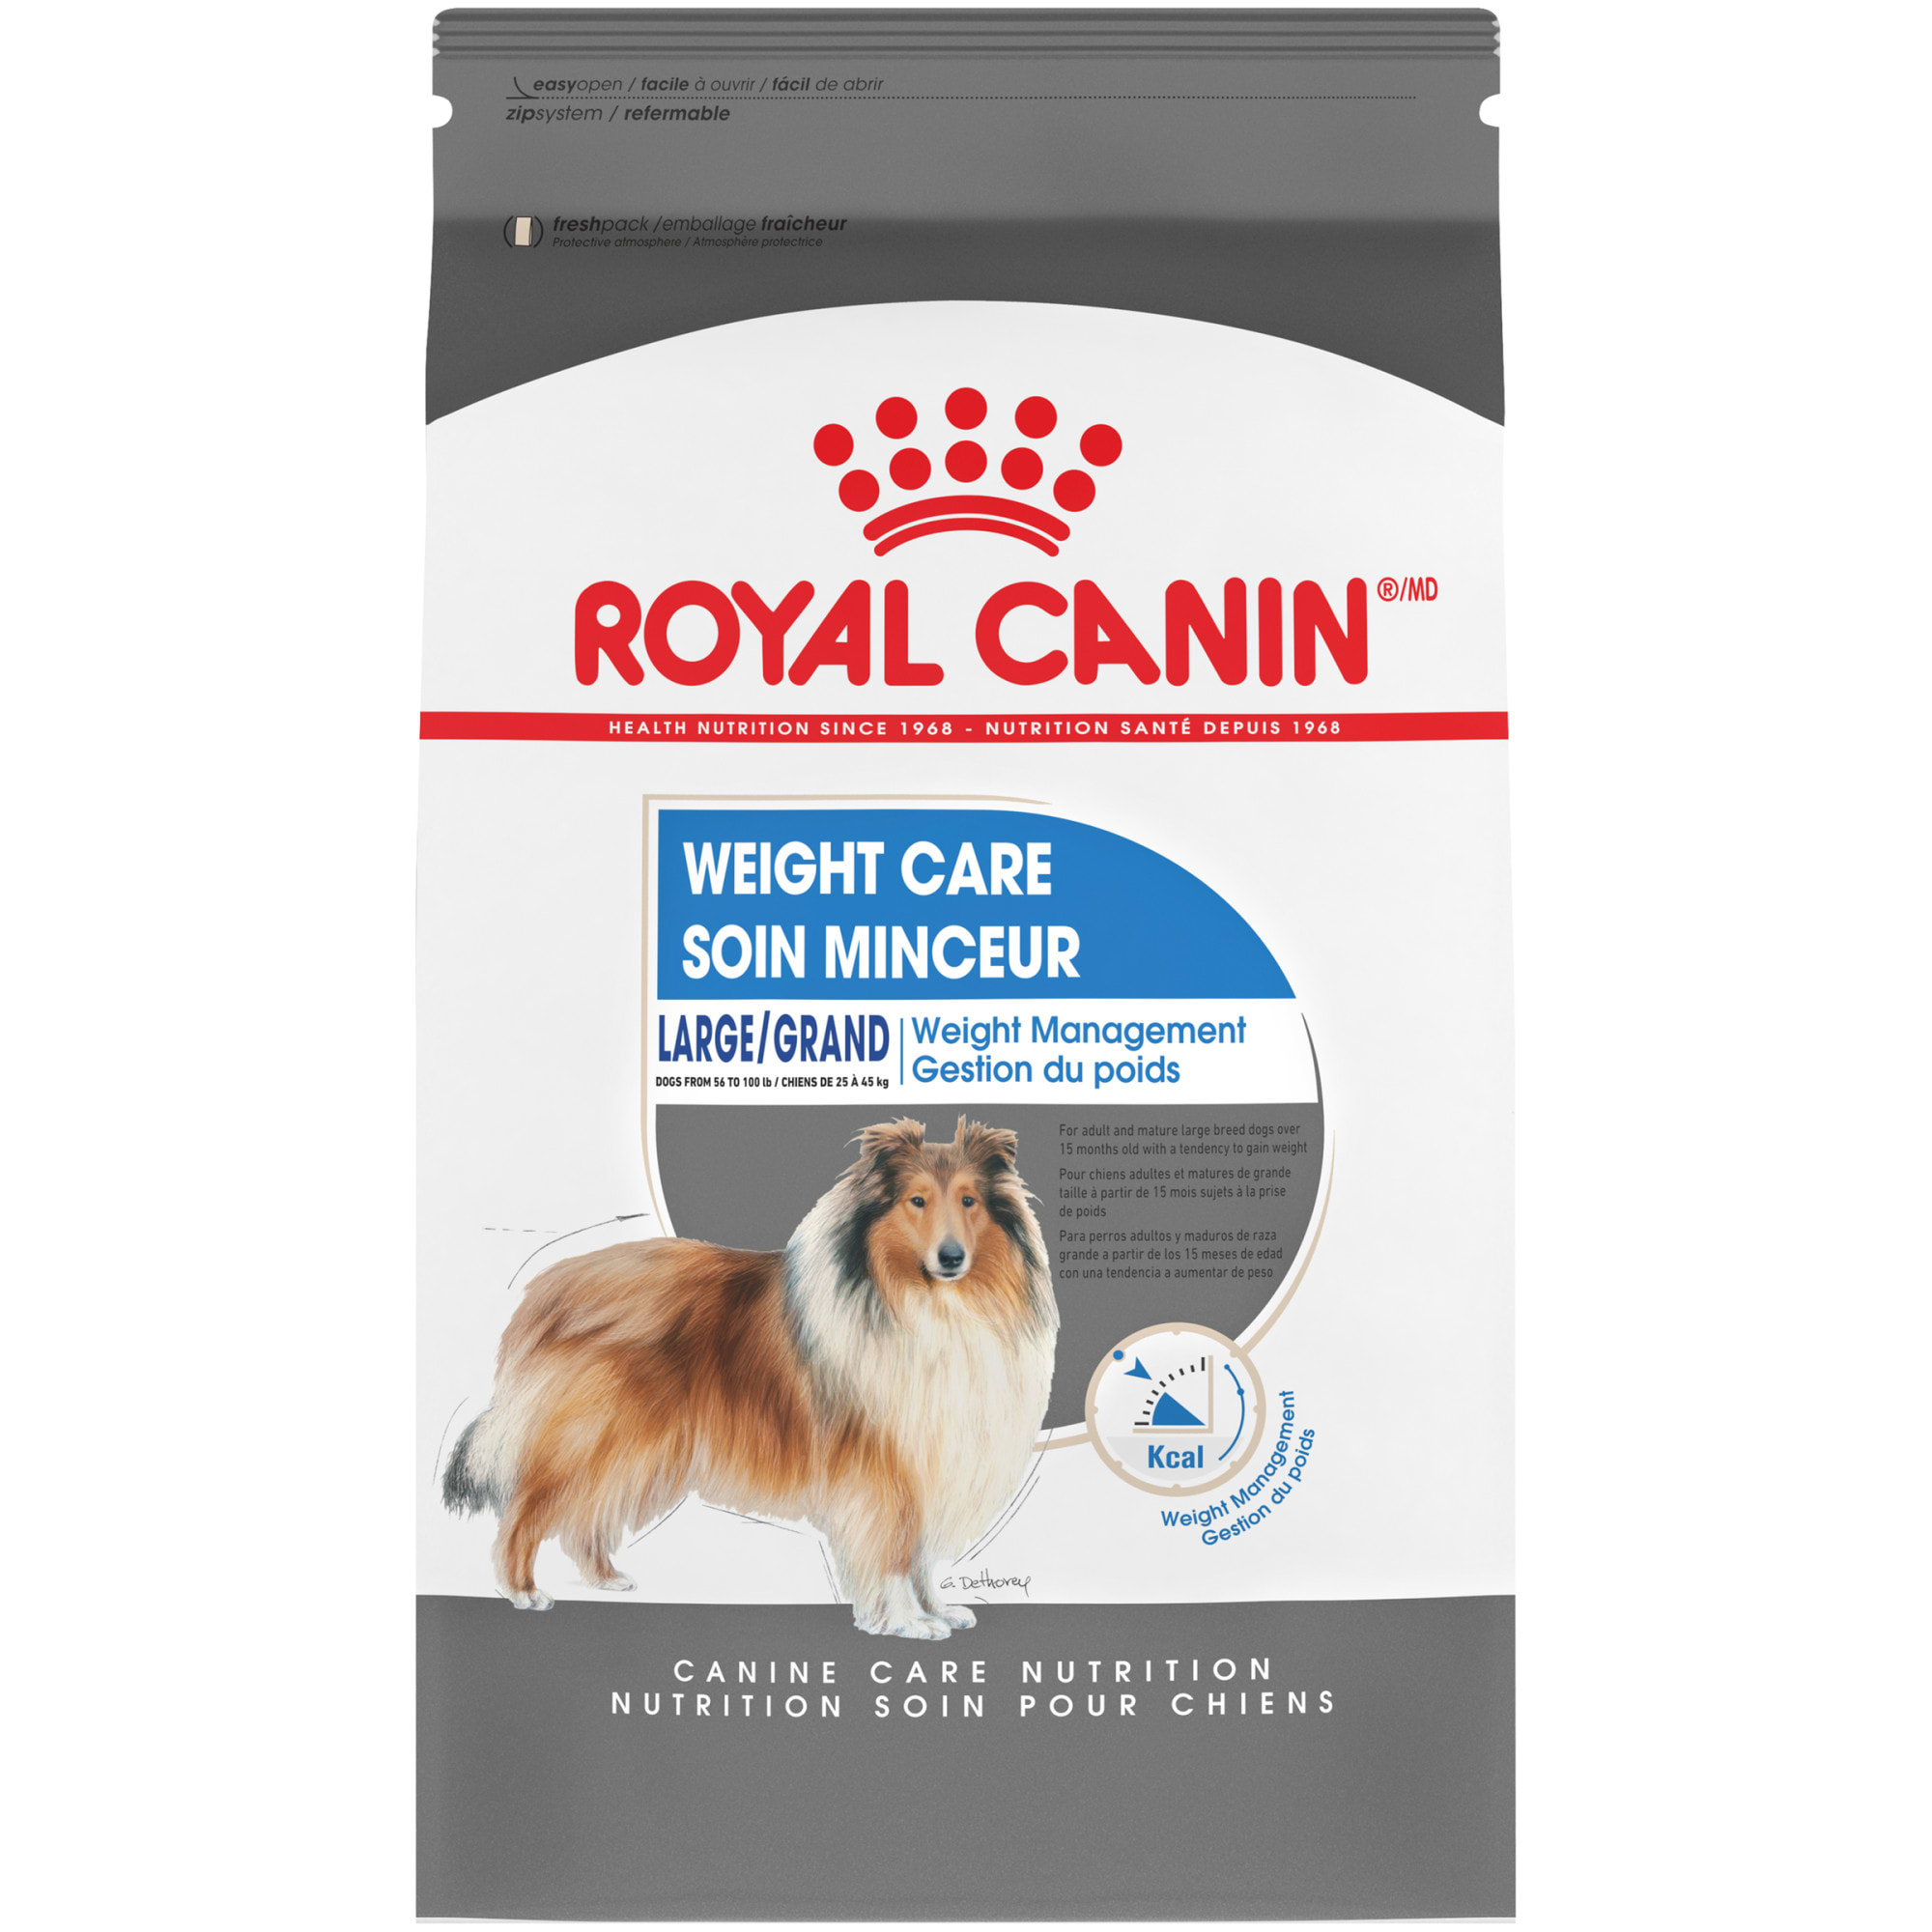 Royal Canin Size Health Nutrition Maxi Weight Care Dry Dog Food, 30 lbs.